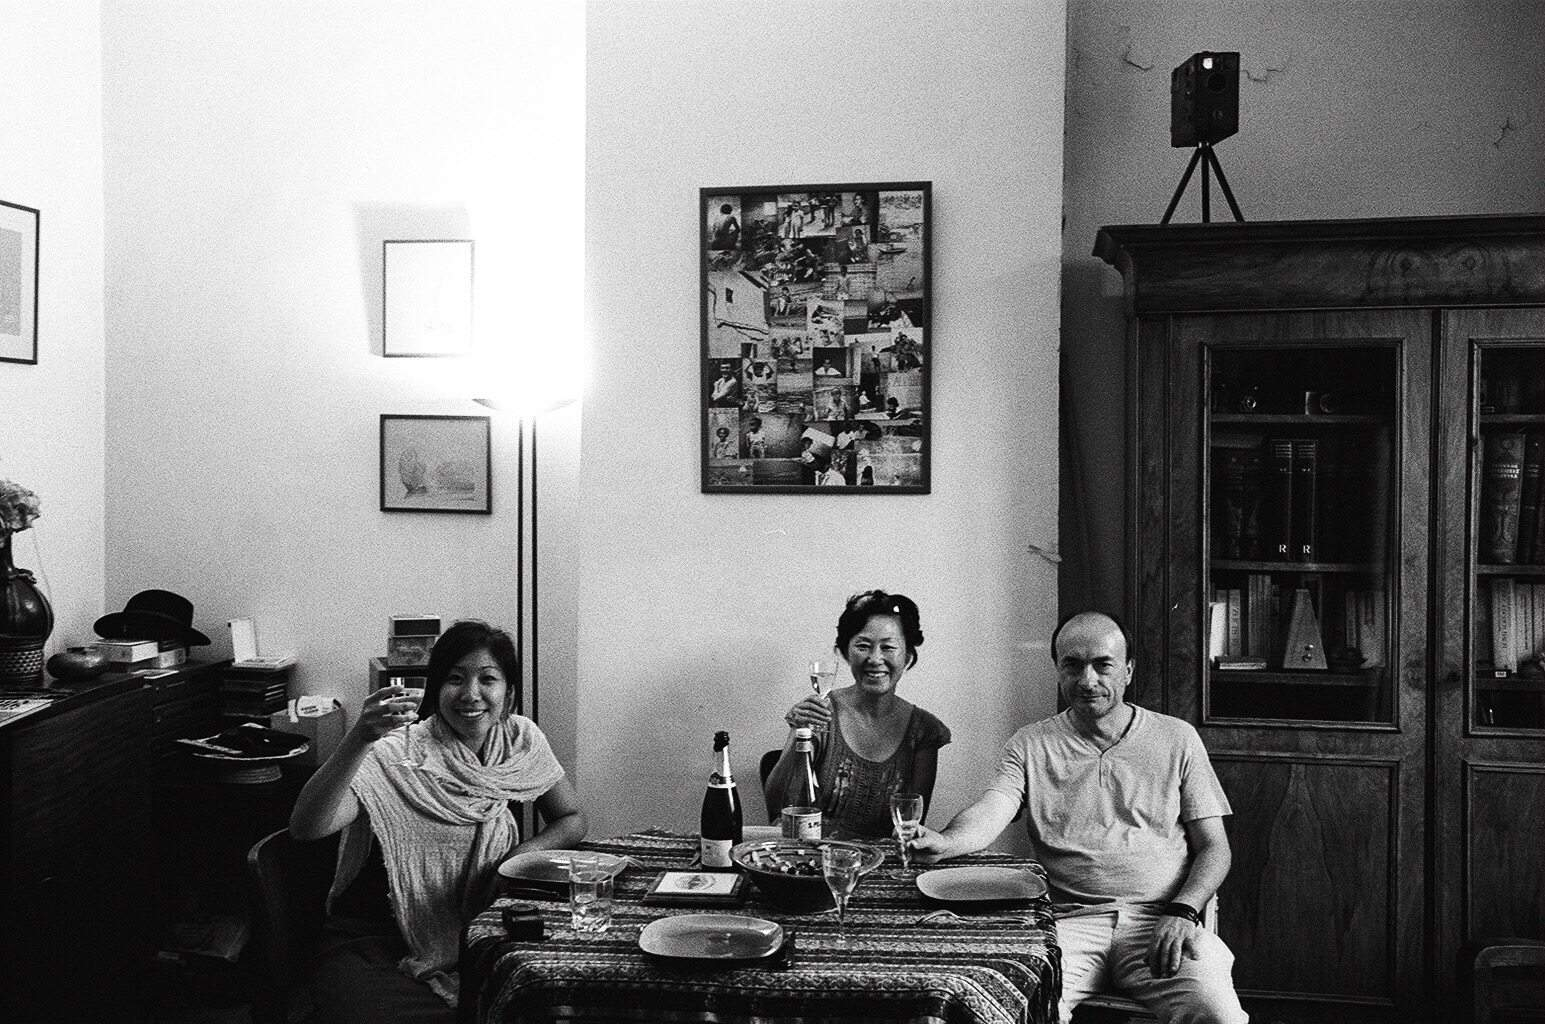 Marseille, 2015. Family portrait for dinner at the home of my friend Yves.